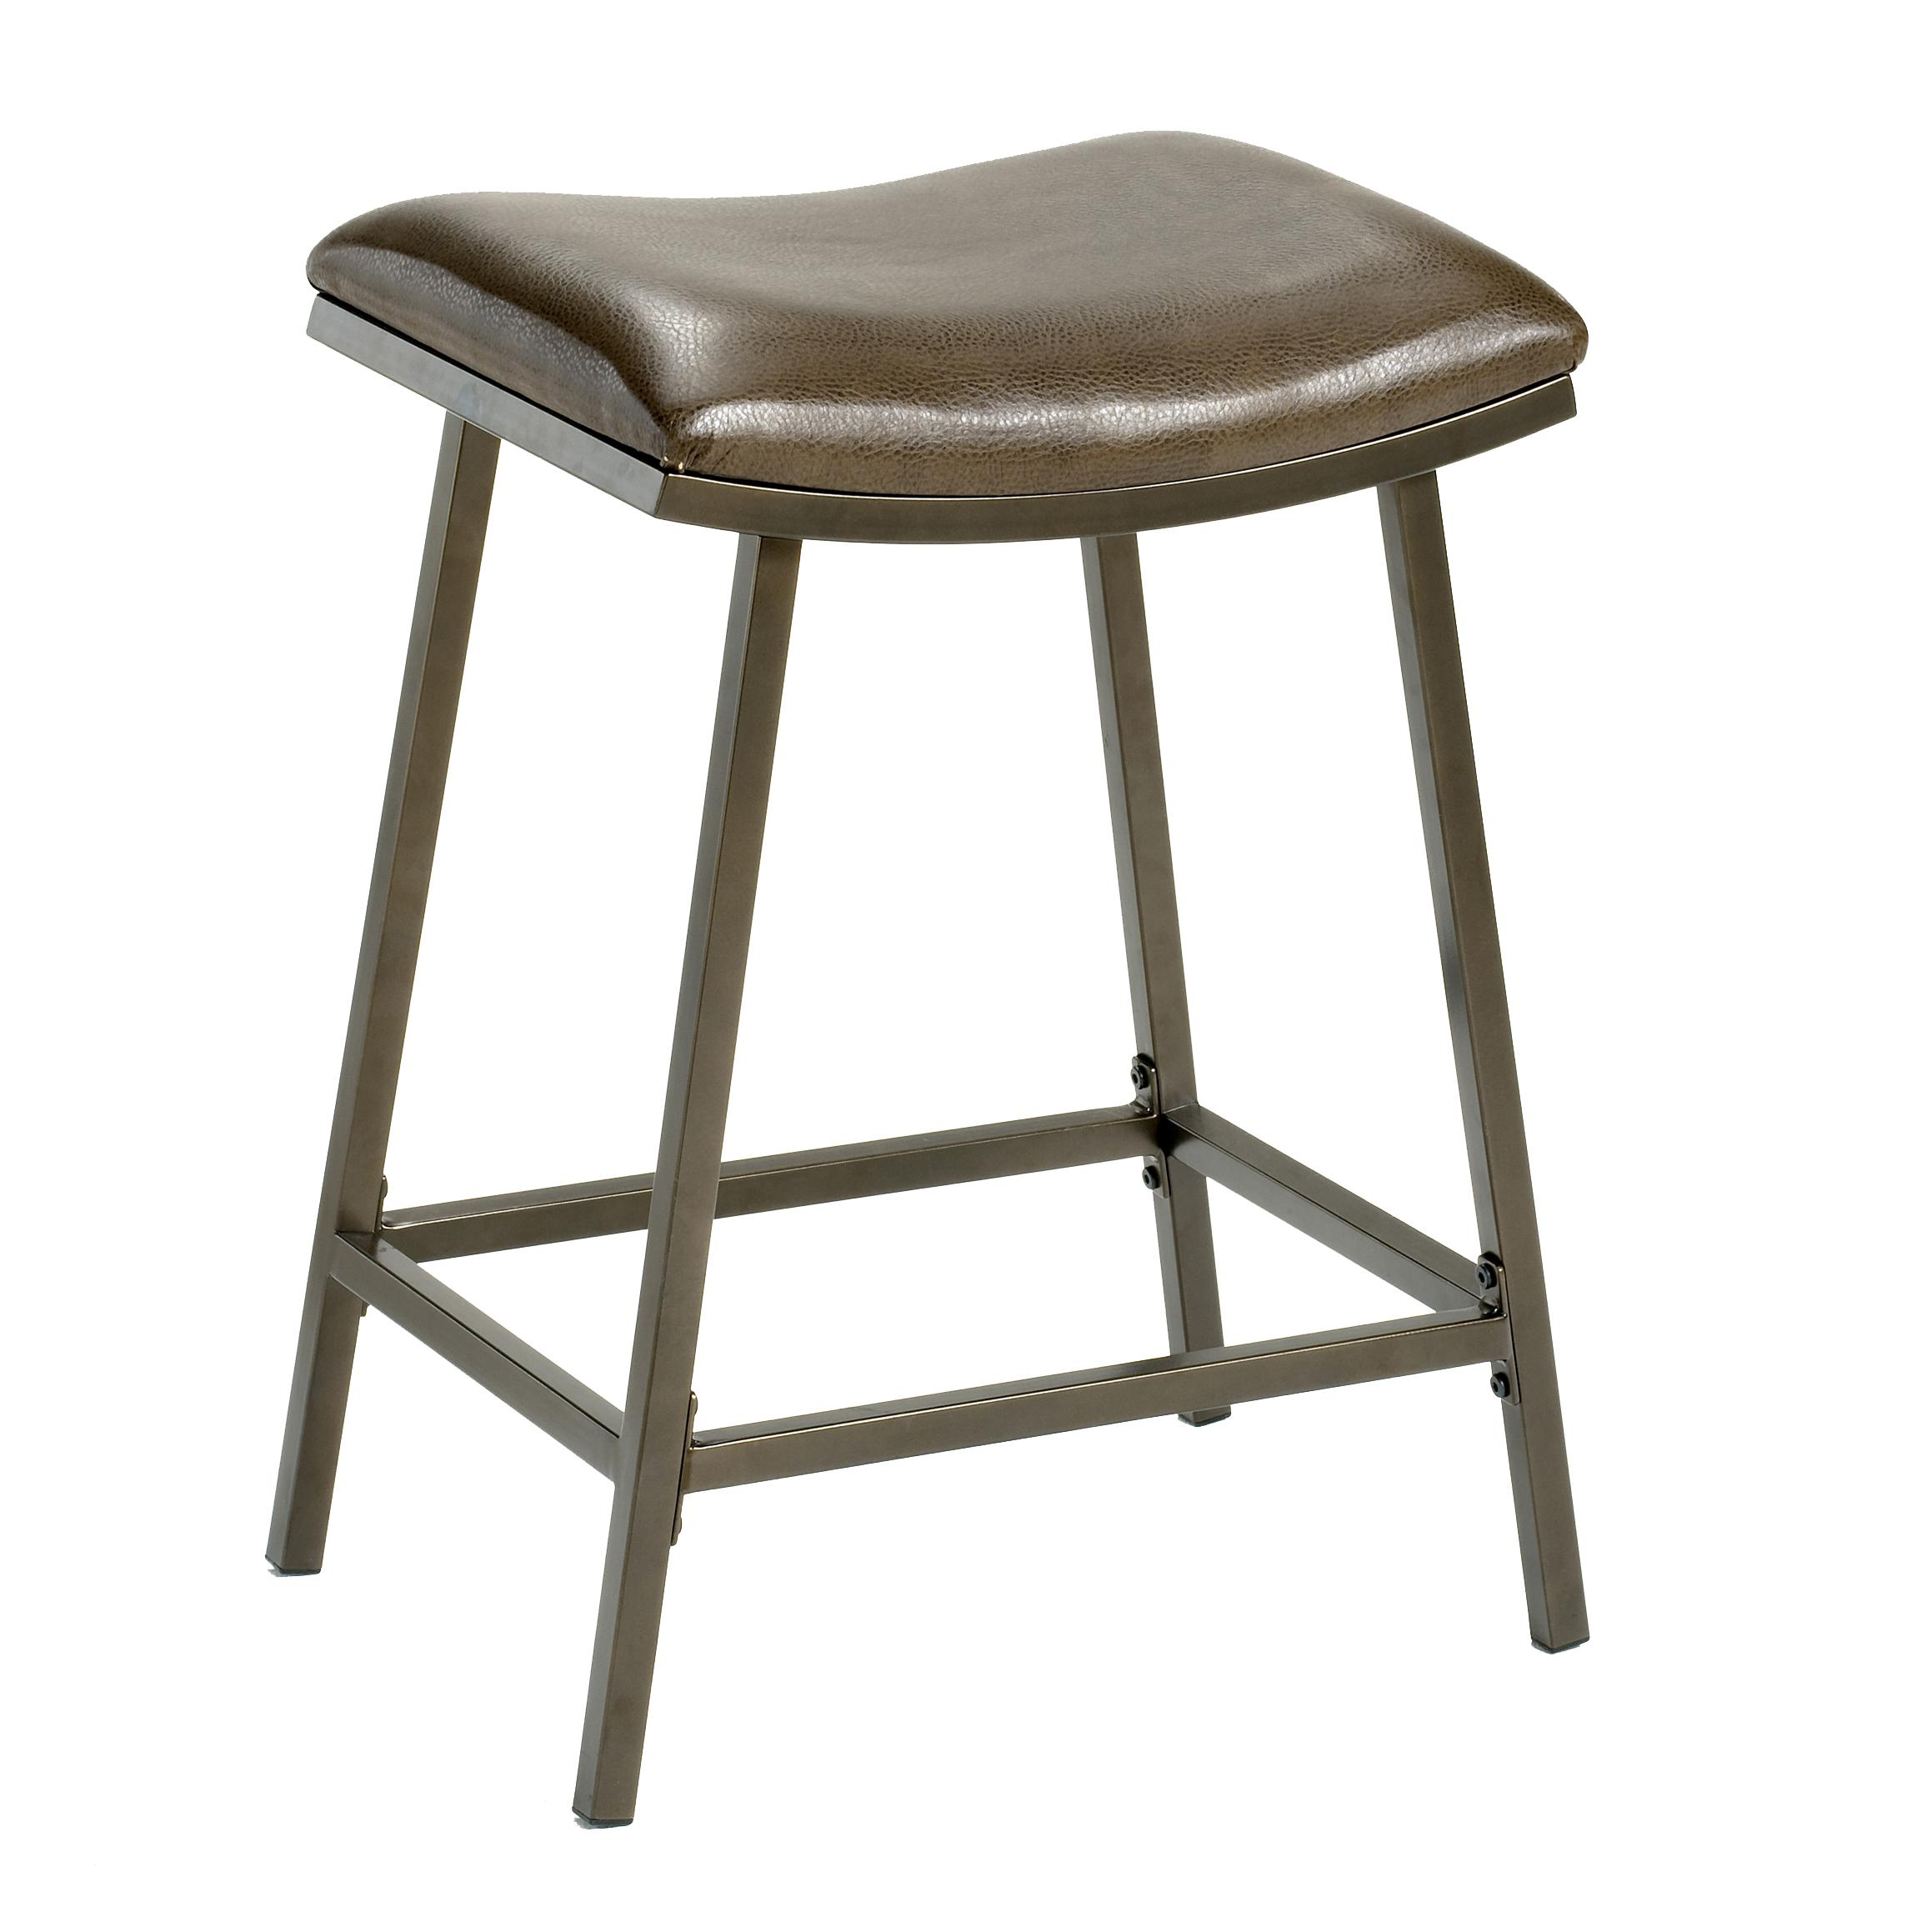 Backless Bar Stools Saddle Counter/Barstool with Nested Leg at Ruby Gordon Home